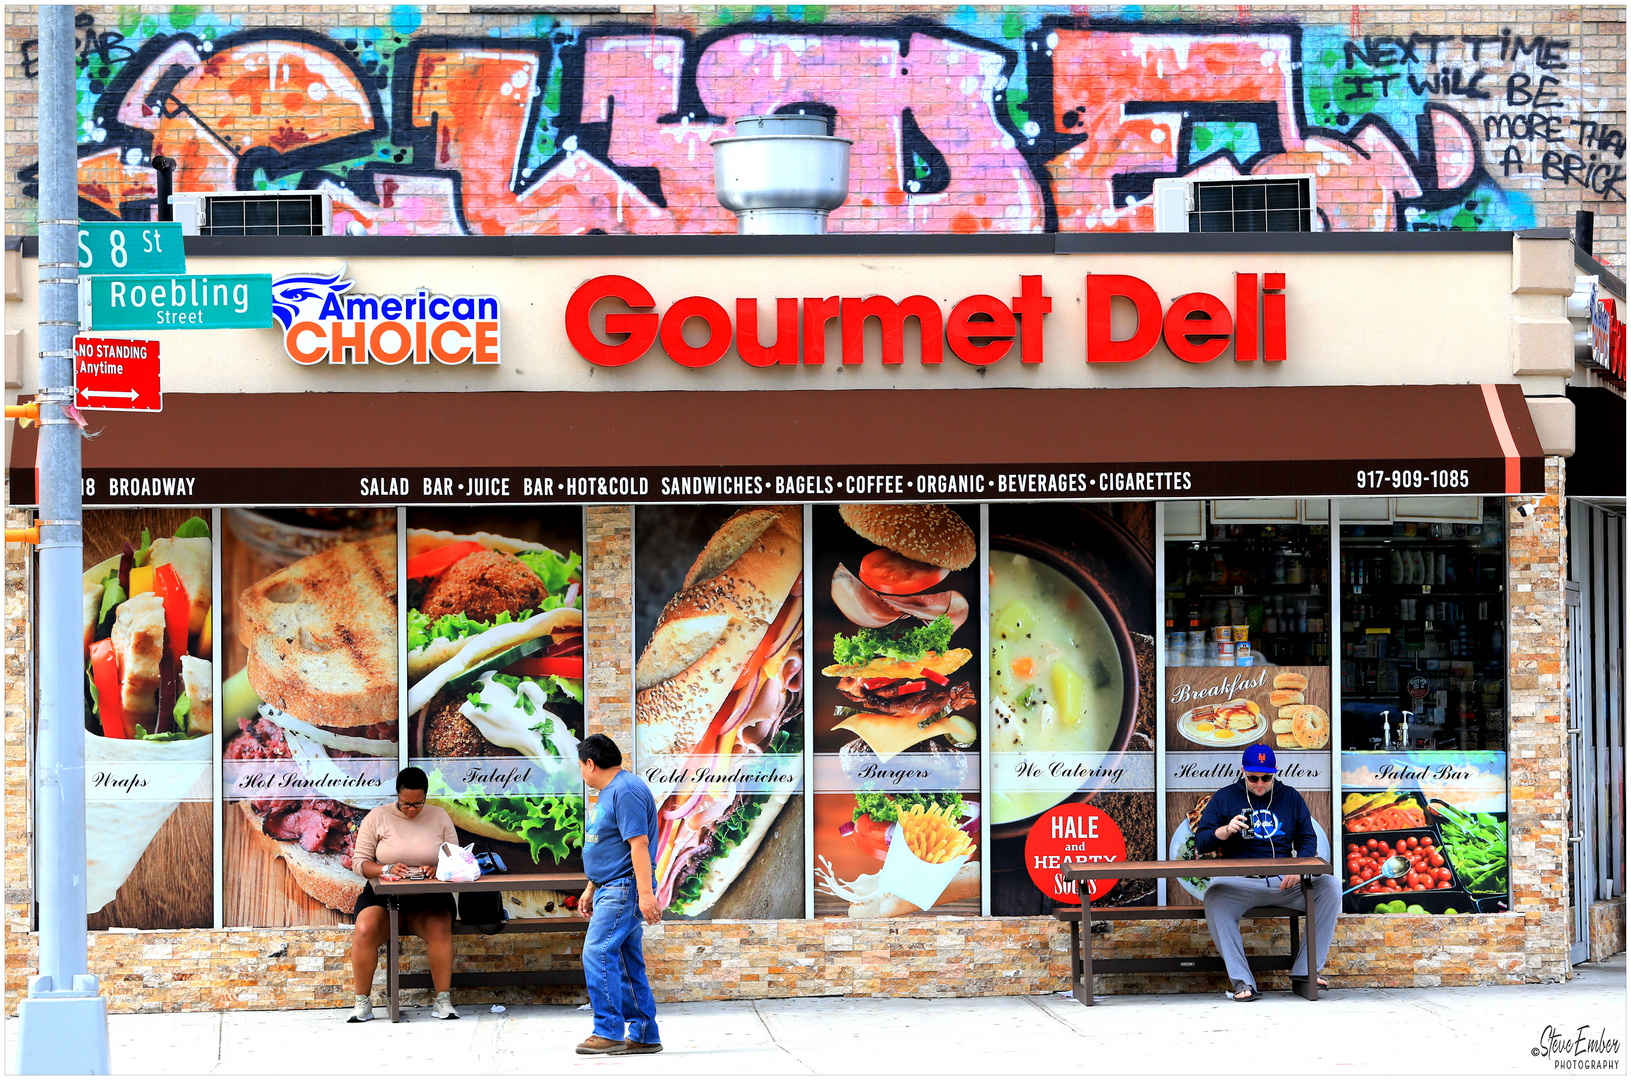 Gourmet Deli - A Williamsburg Impression